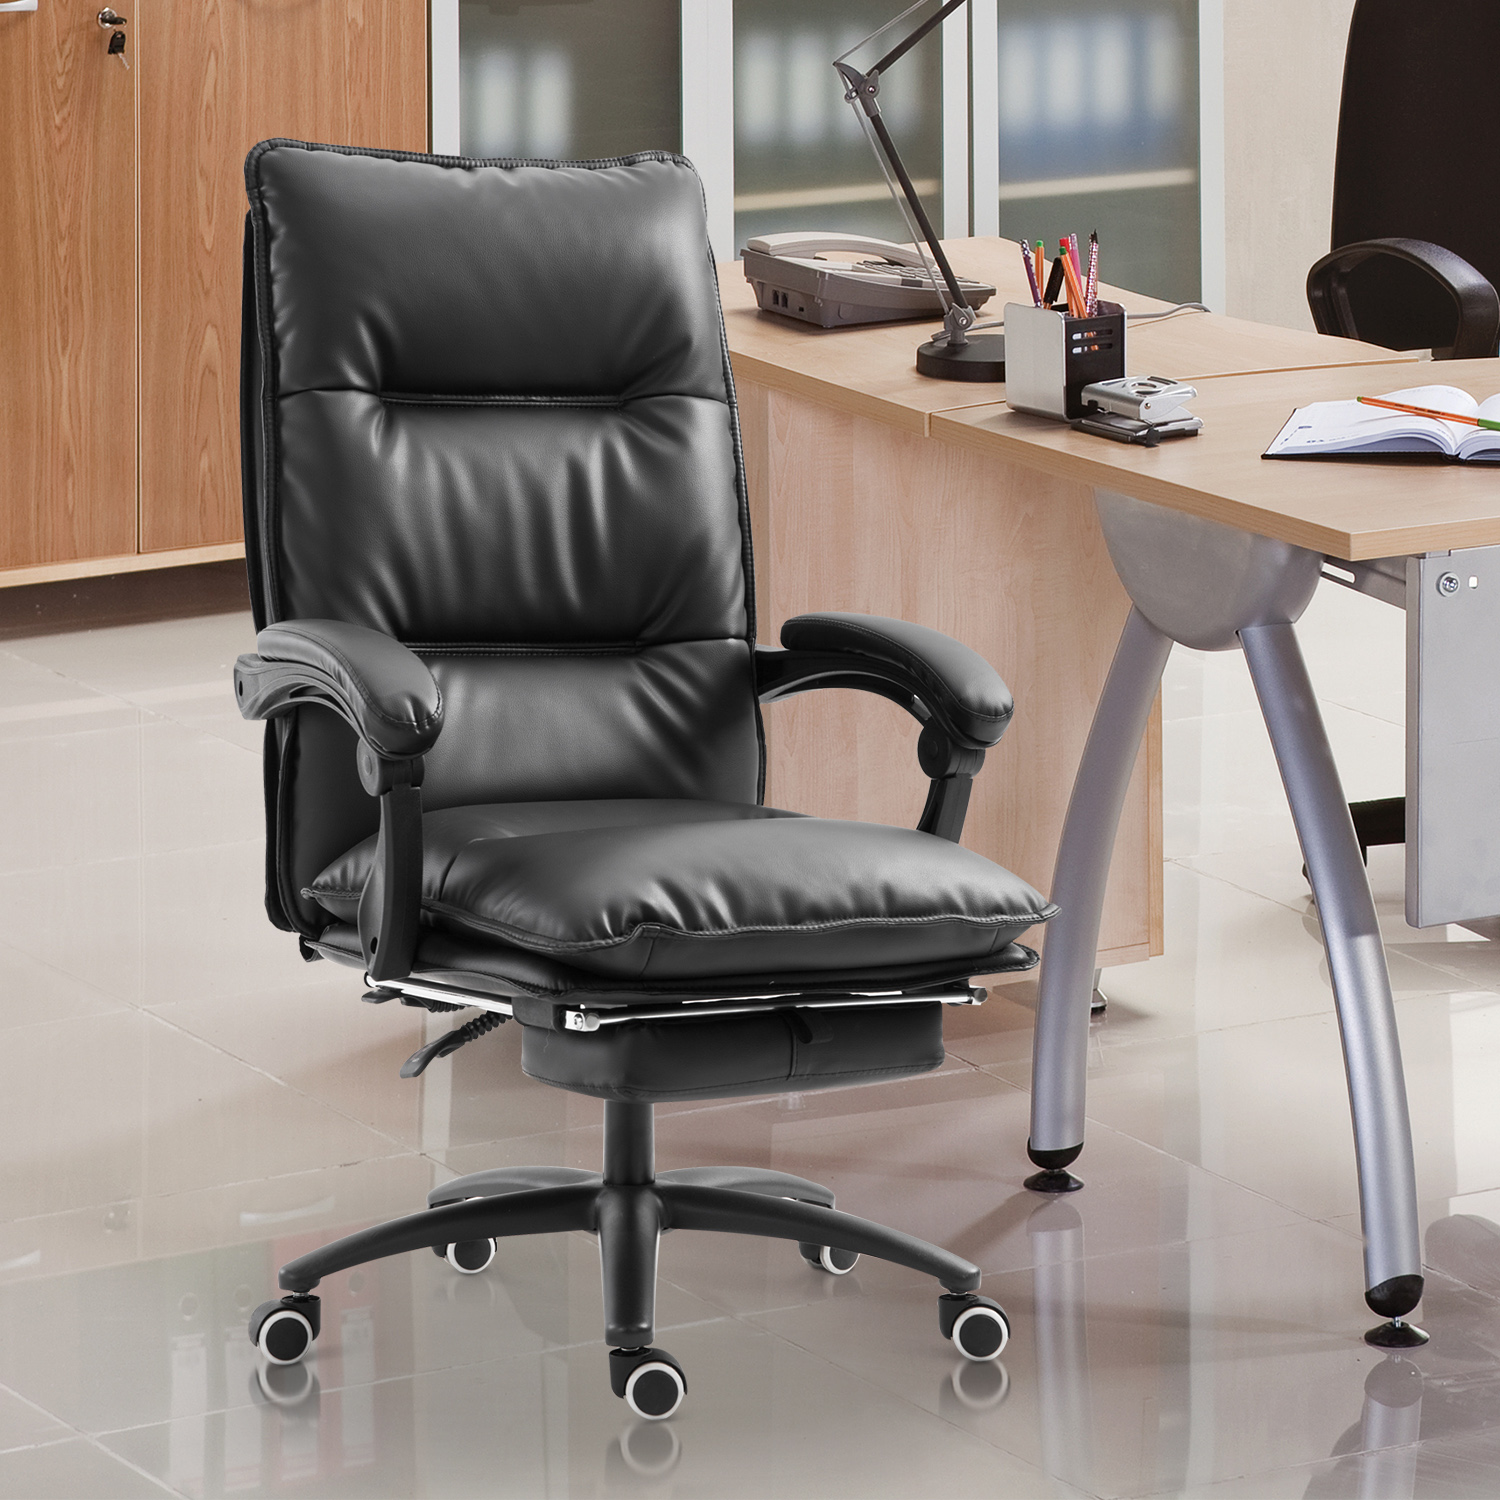 Image of CAD $159.99 Vinsetto Office Chair with Extend Footrest PU Leather Black / High Back Executive Adjustable Swivel Recliner Seat Reclining w/ Canada 95509792648